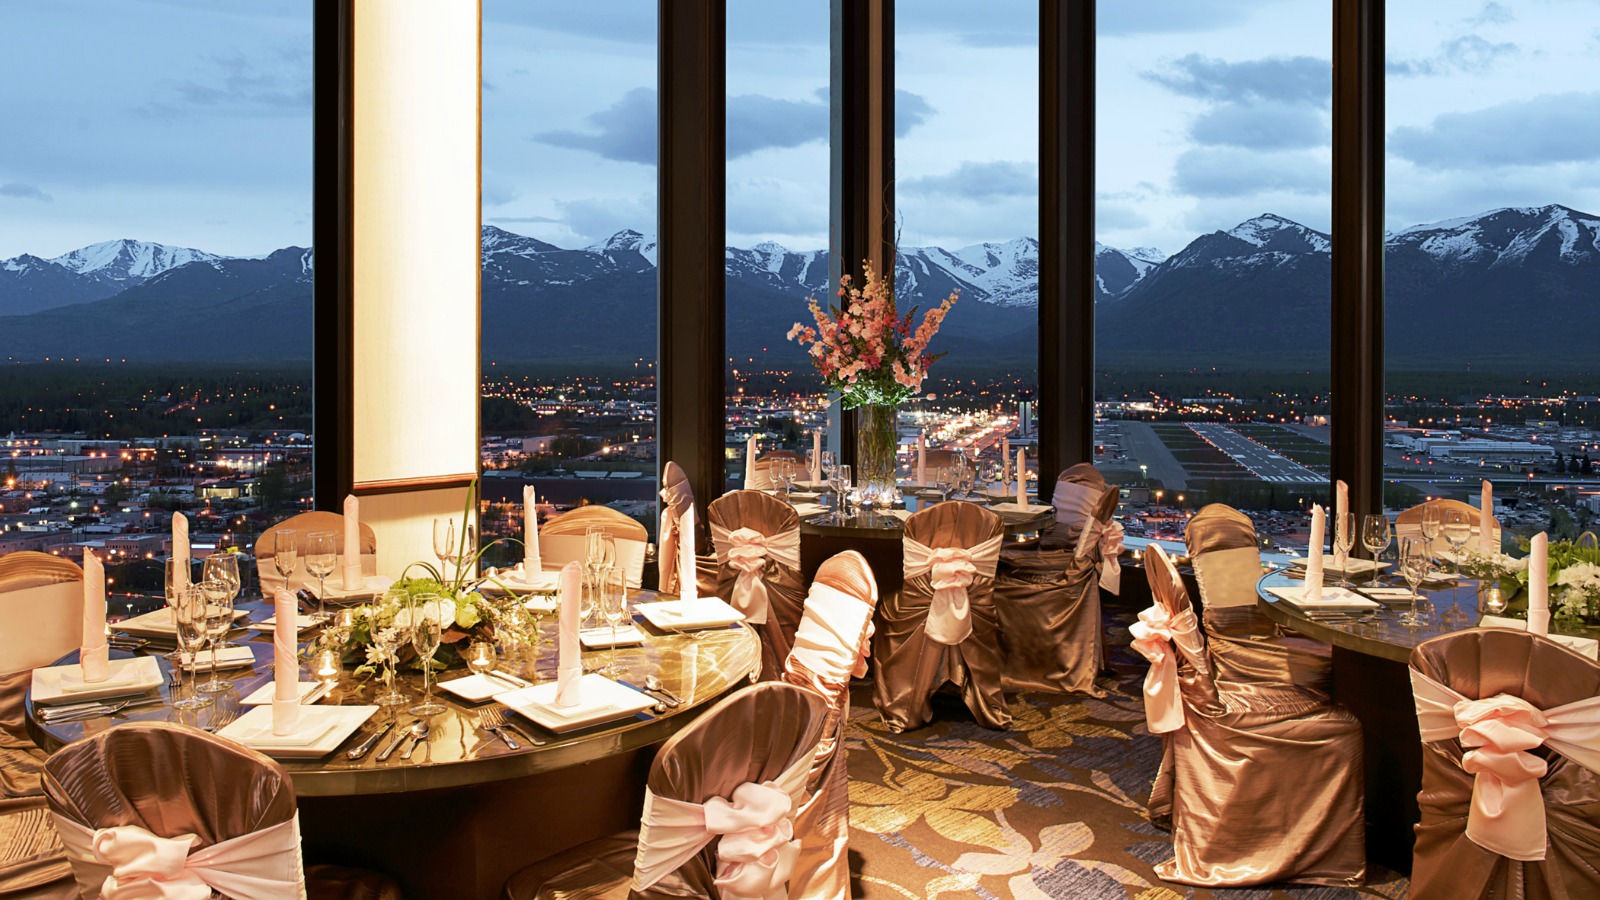 Anchorage Meeting Facilities - Banquet Room View